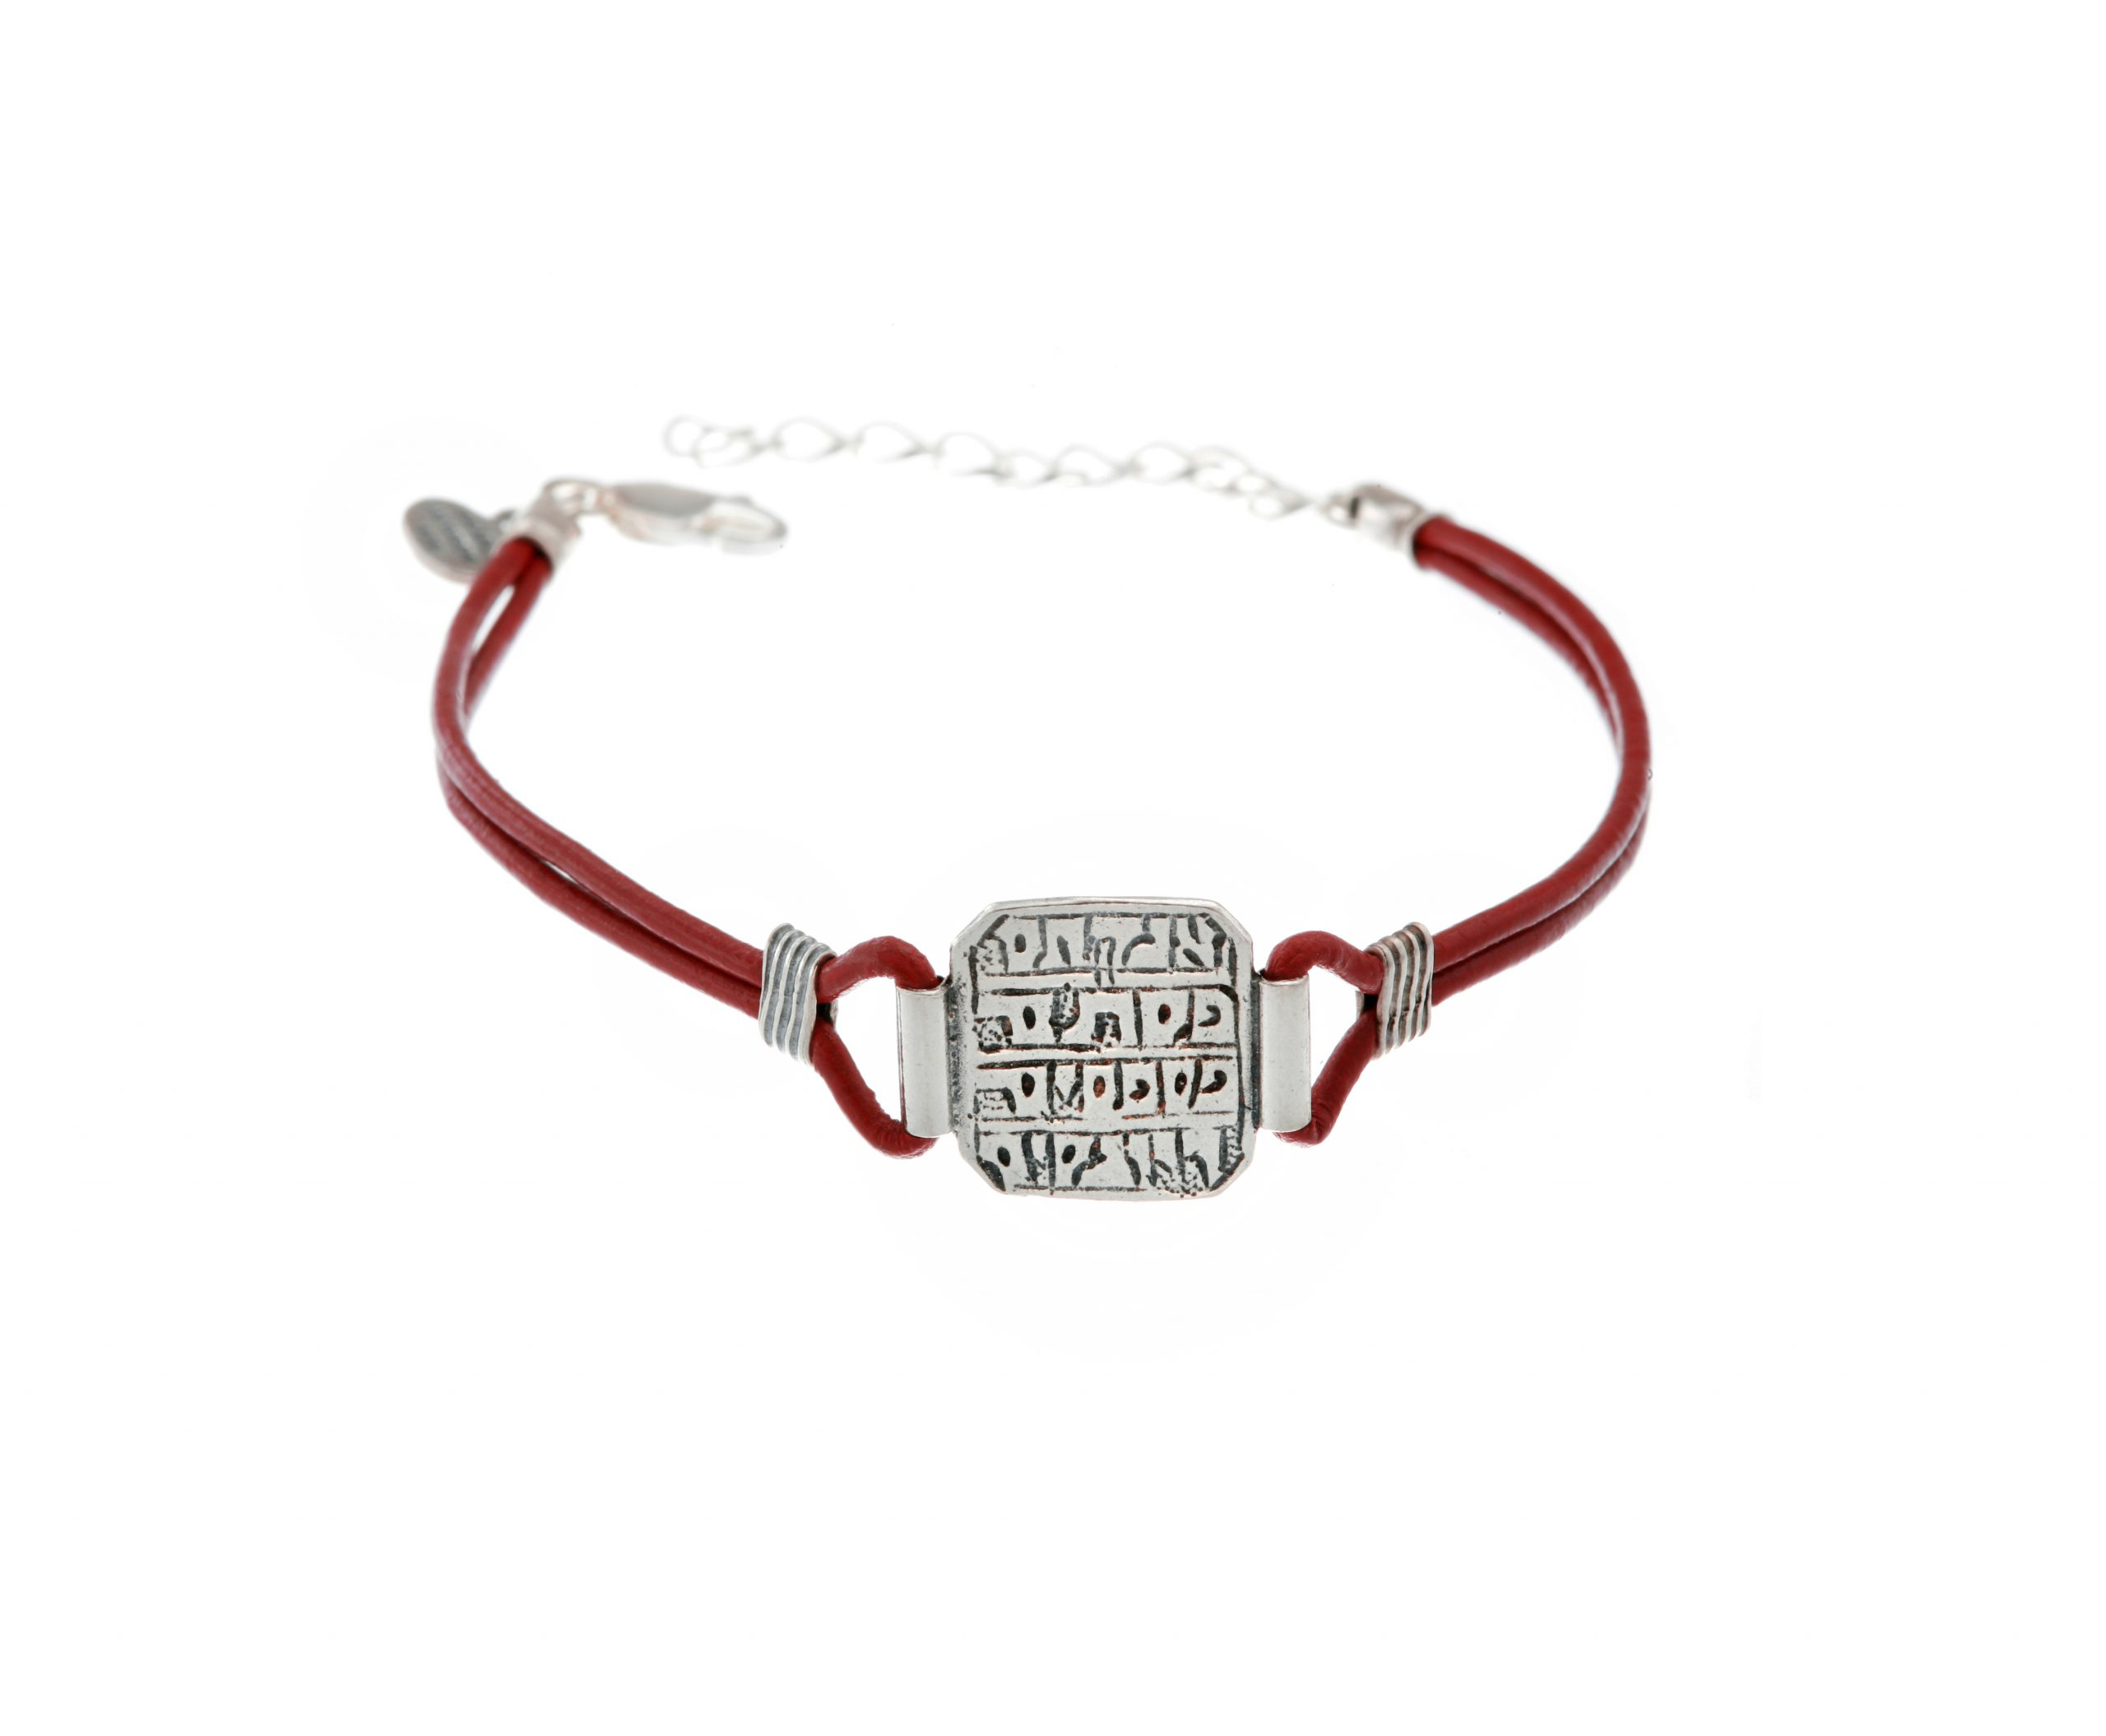 Leather Bracelet With Silver Healing Amuletic Pendant